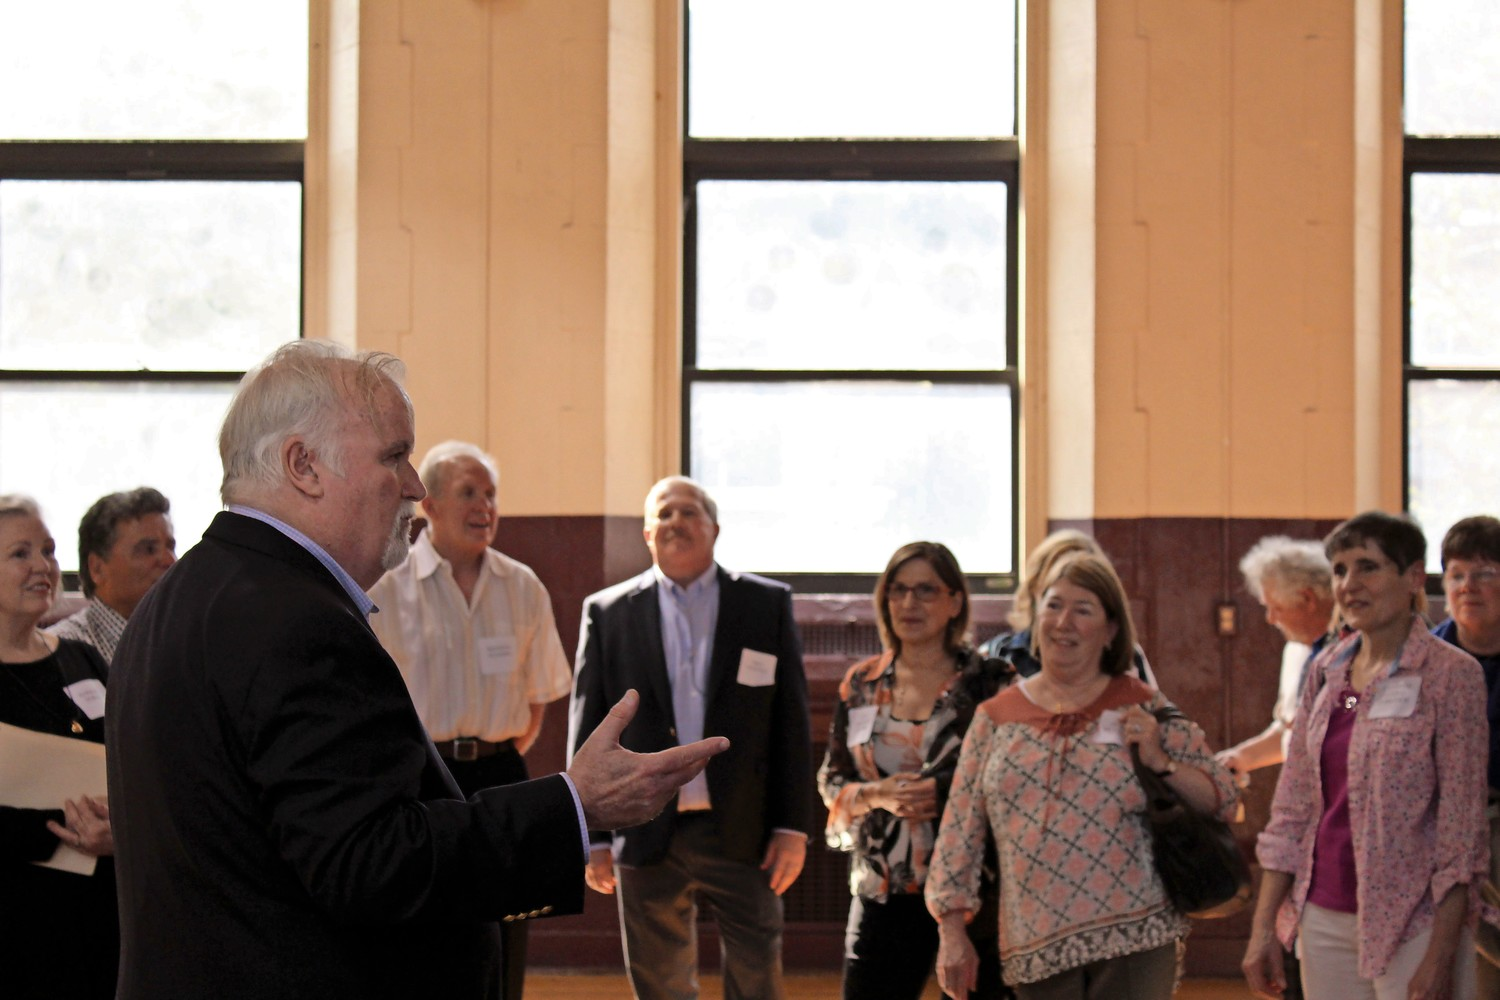 Joe Gunn, one of the organizers of the 50-year reunion, talks to attendees prior to the start of a tour of the St. Margaret of Cortona School.